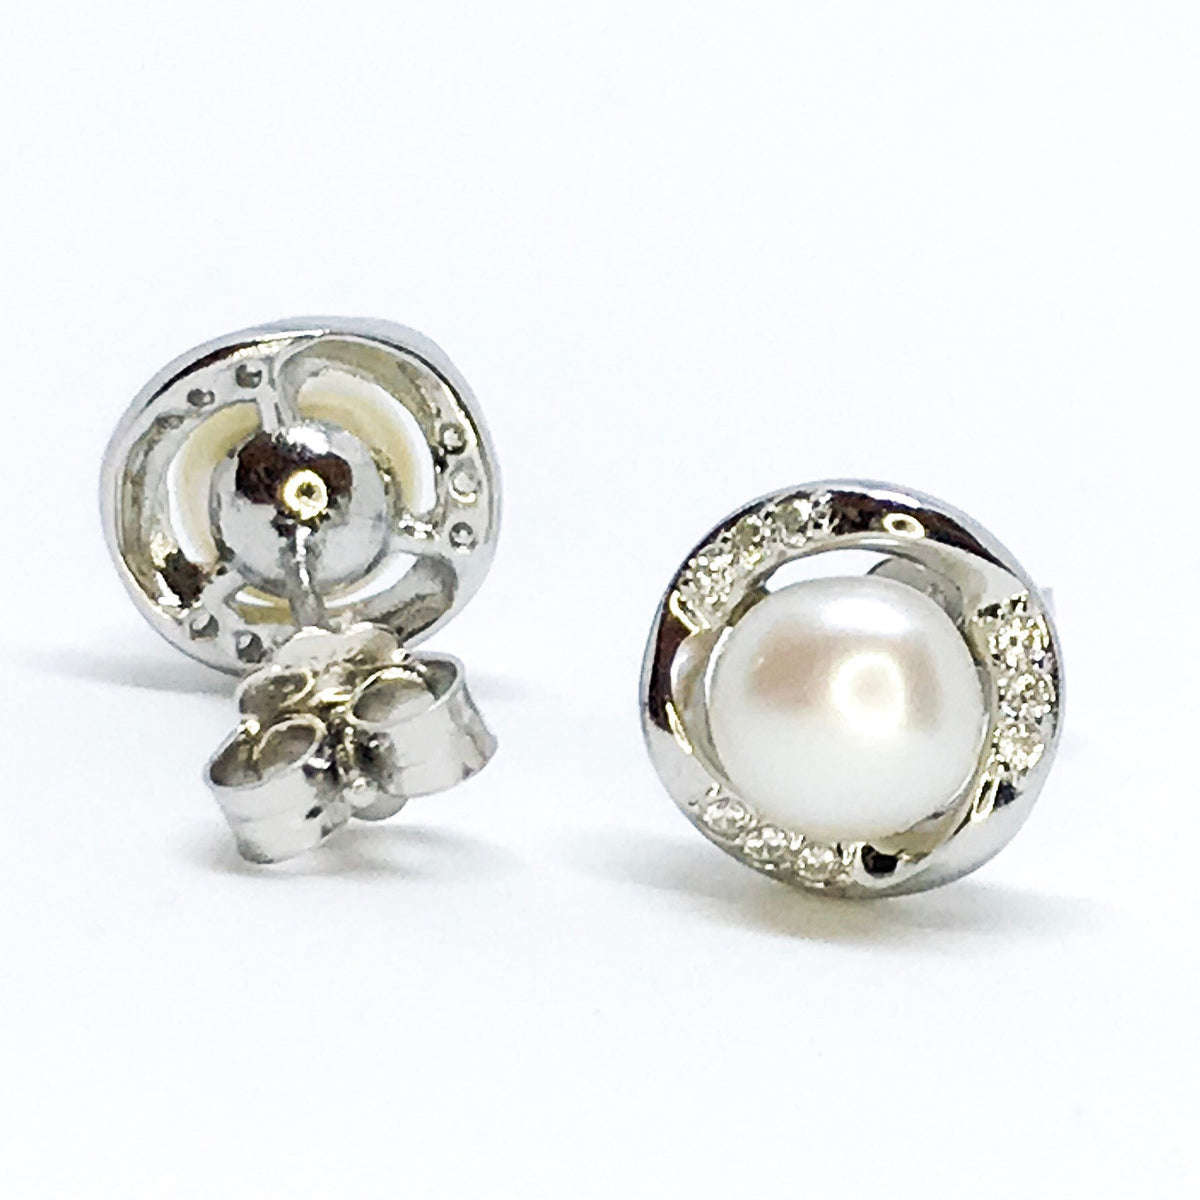 NEW 14k White Gold Layered on Sterling Silver Classy Pearl Earrings